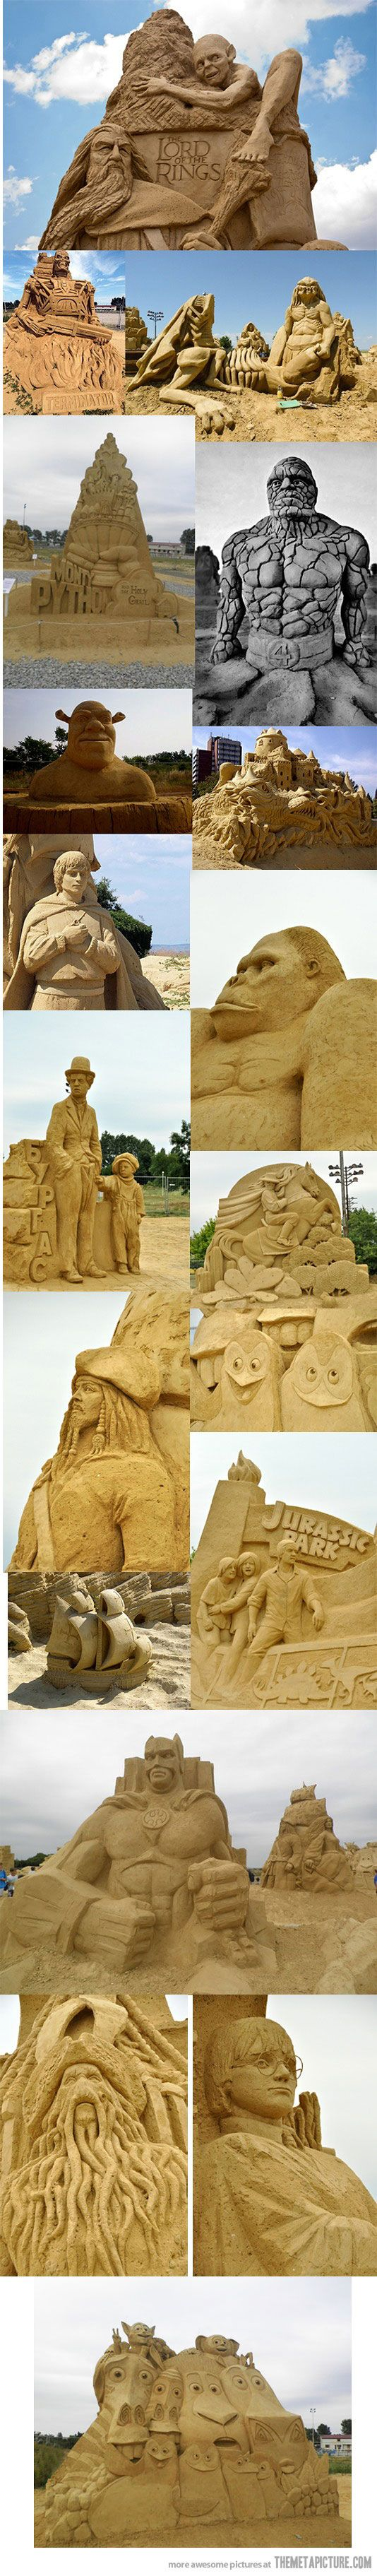 Bulgarian sand sculptures